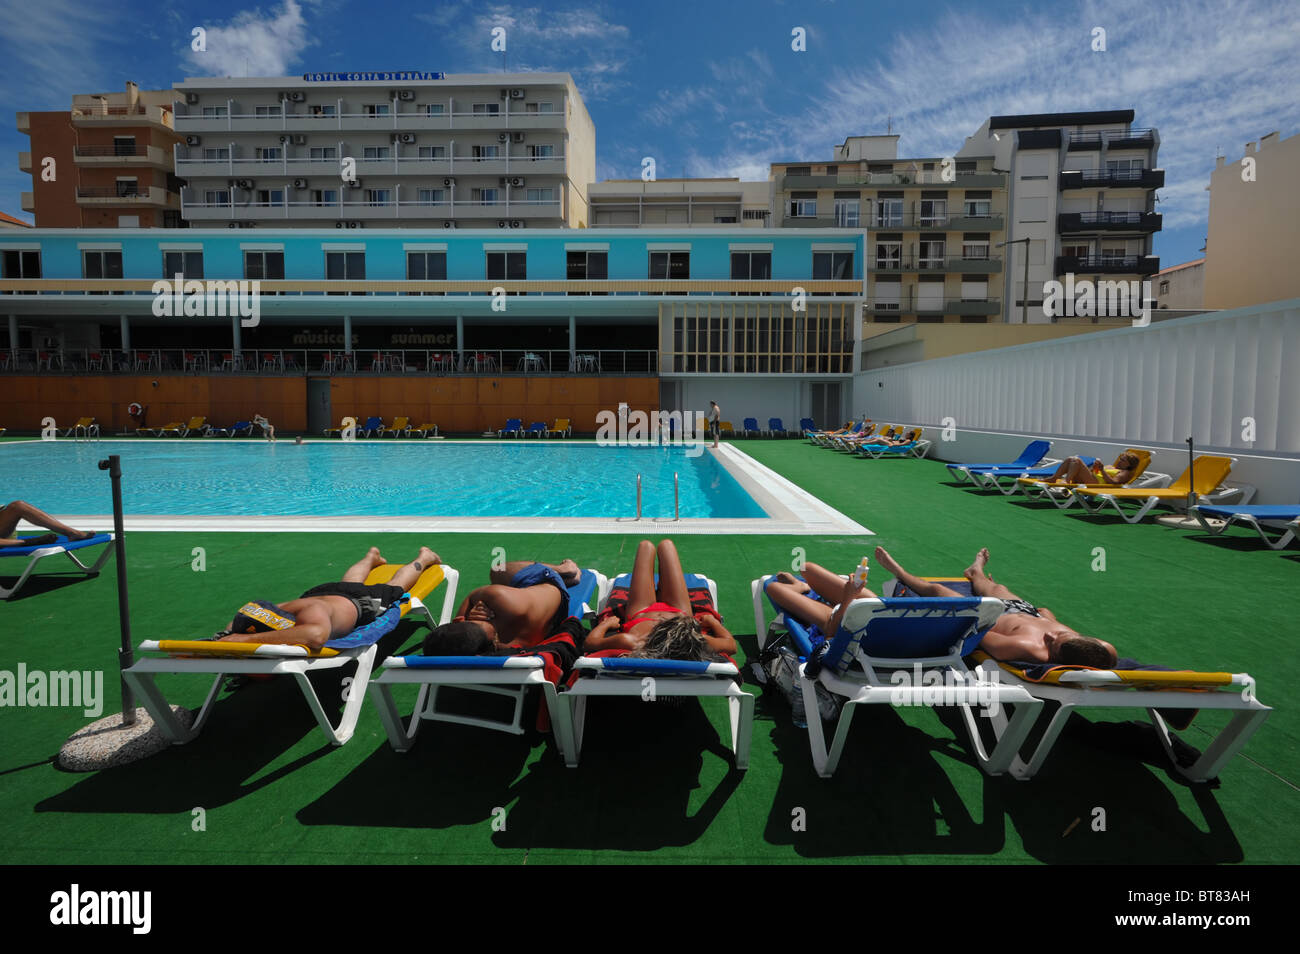 Group of people on lounge chairs sunbathing by a outdoor swimming pool Stock Photo